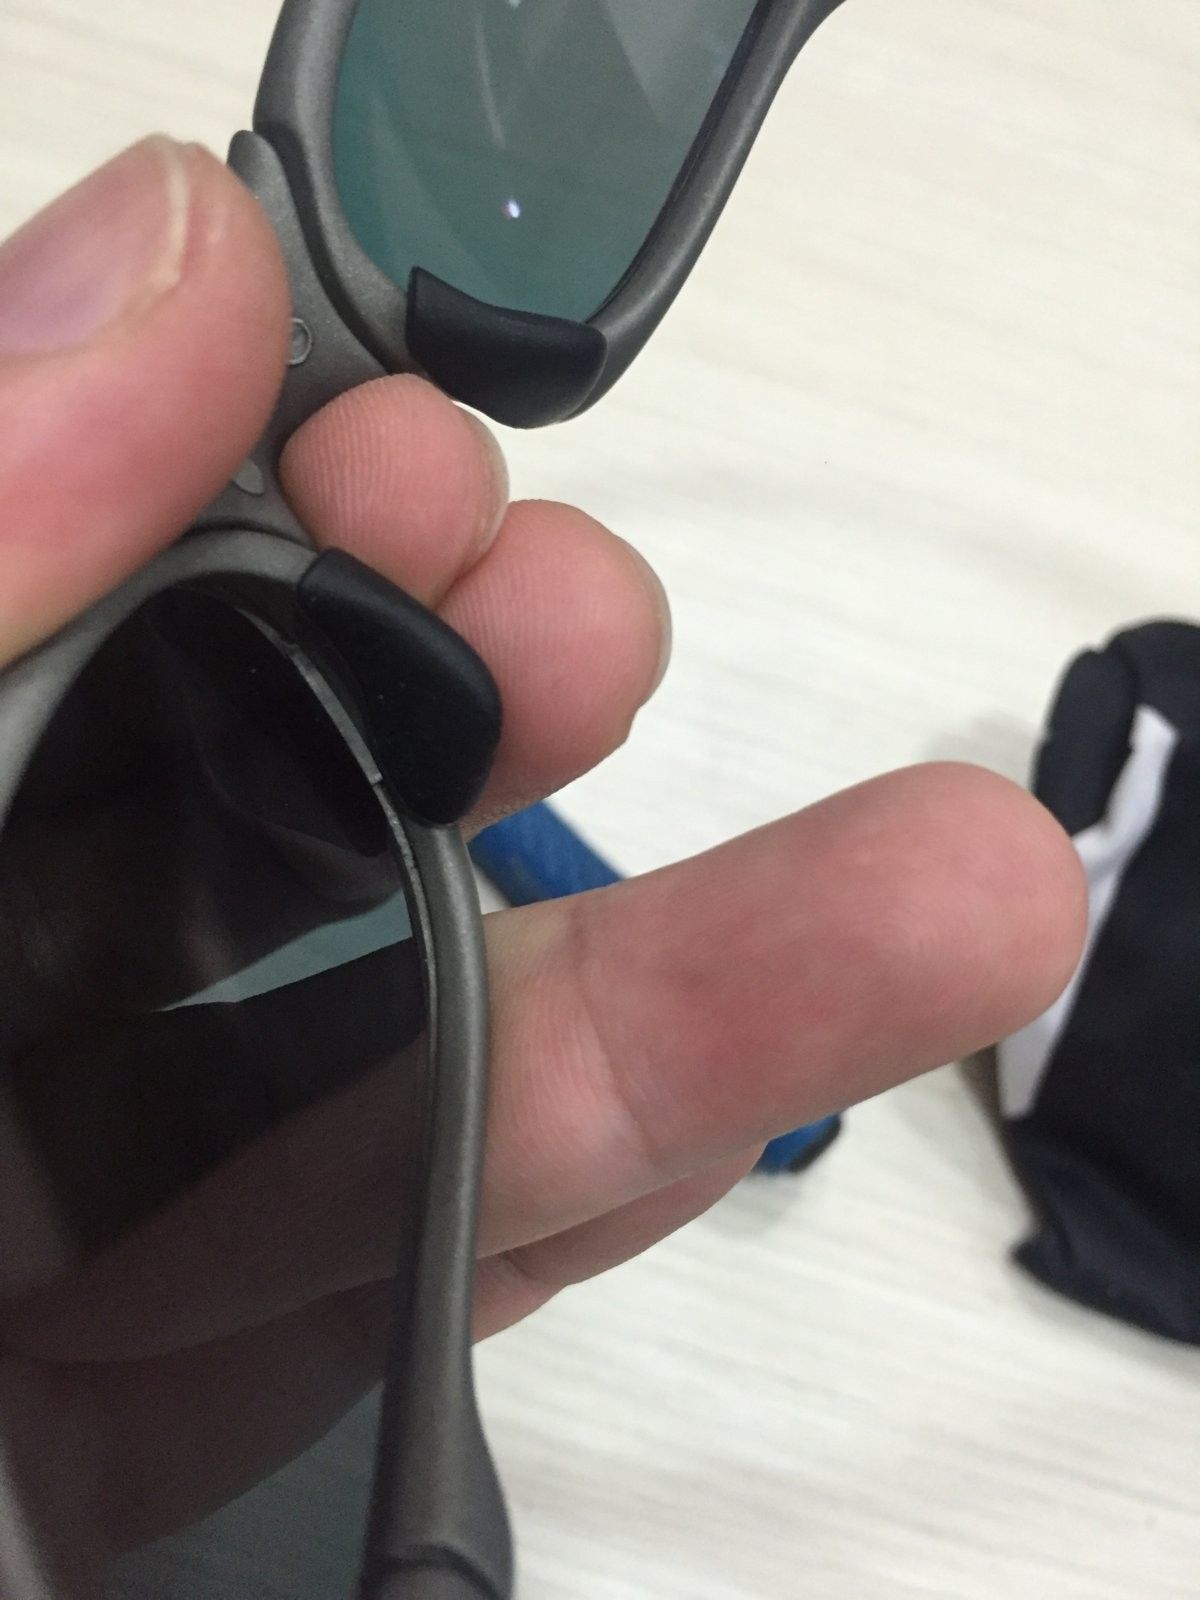 Oakley Penny - X - Metal Refinished - Aftermarket Wiggly Lenses - Fix - 2016-03-16 12.33.13.jpg